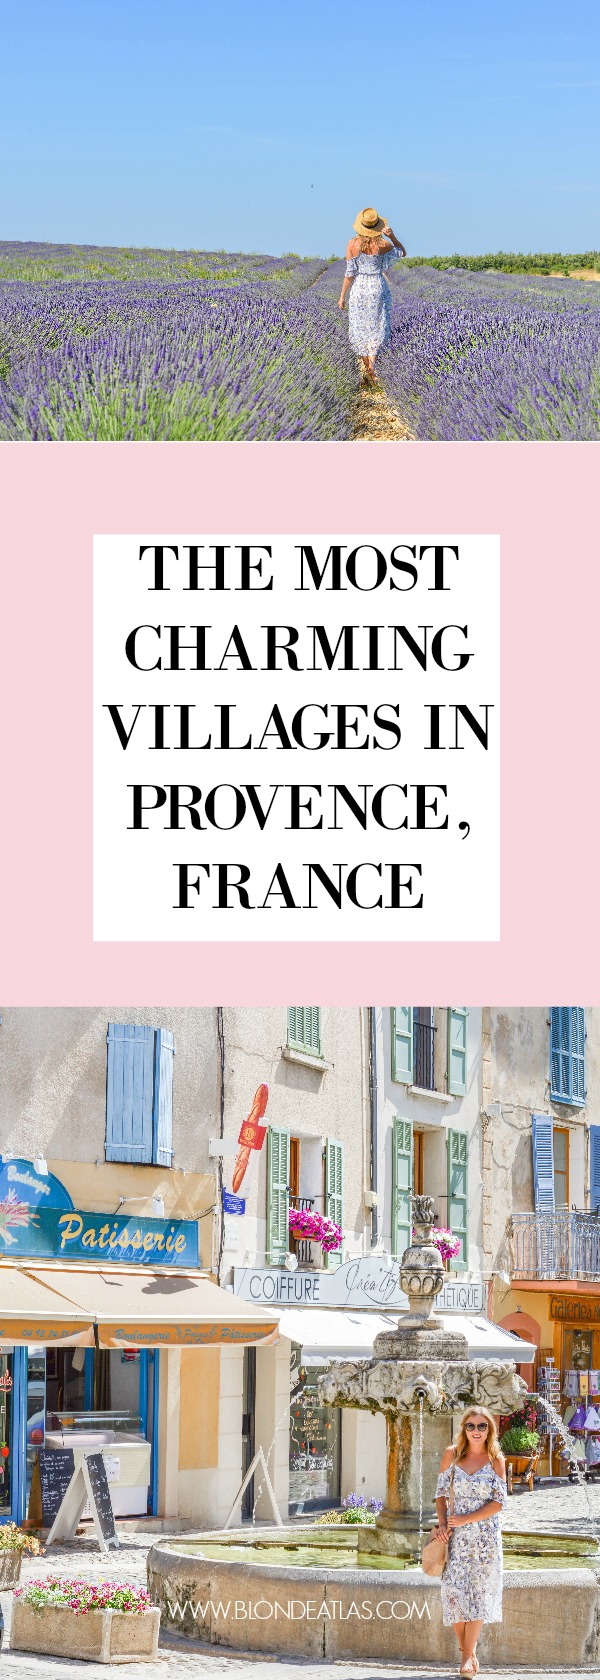 CHARMING VILLAGES IN PROVENCE FRANCE